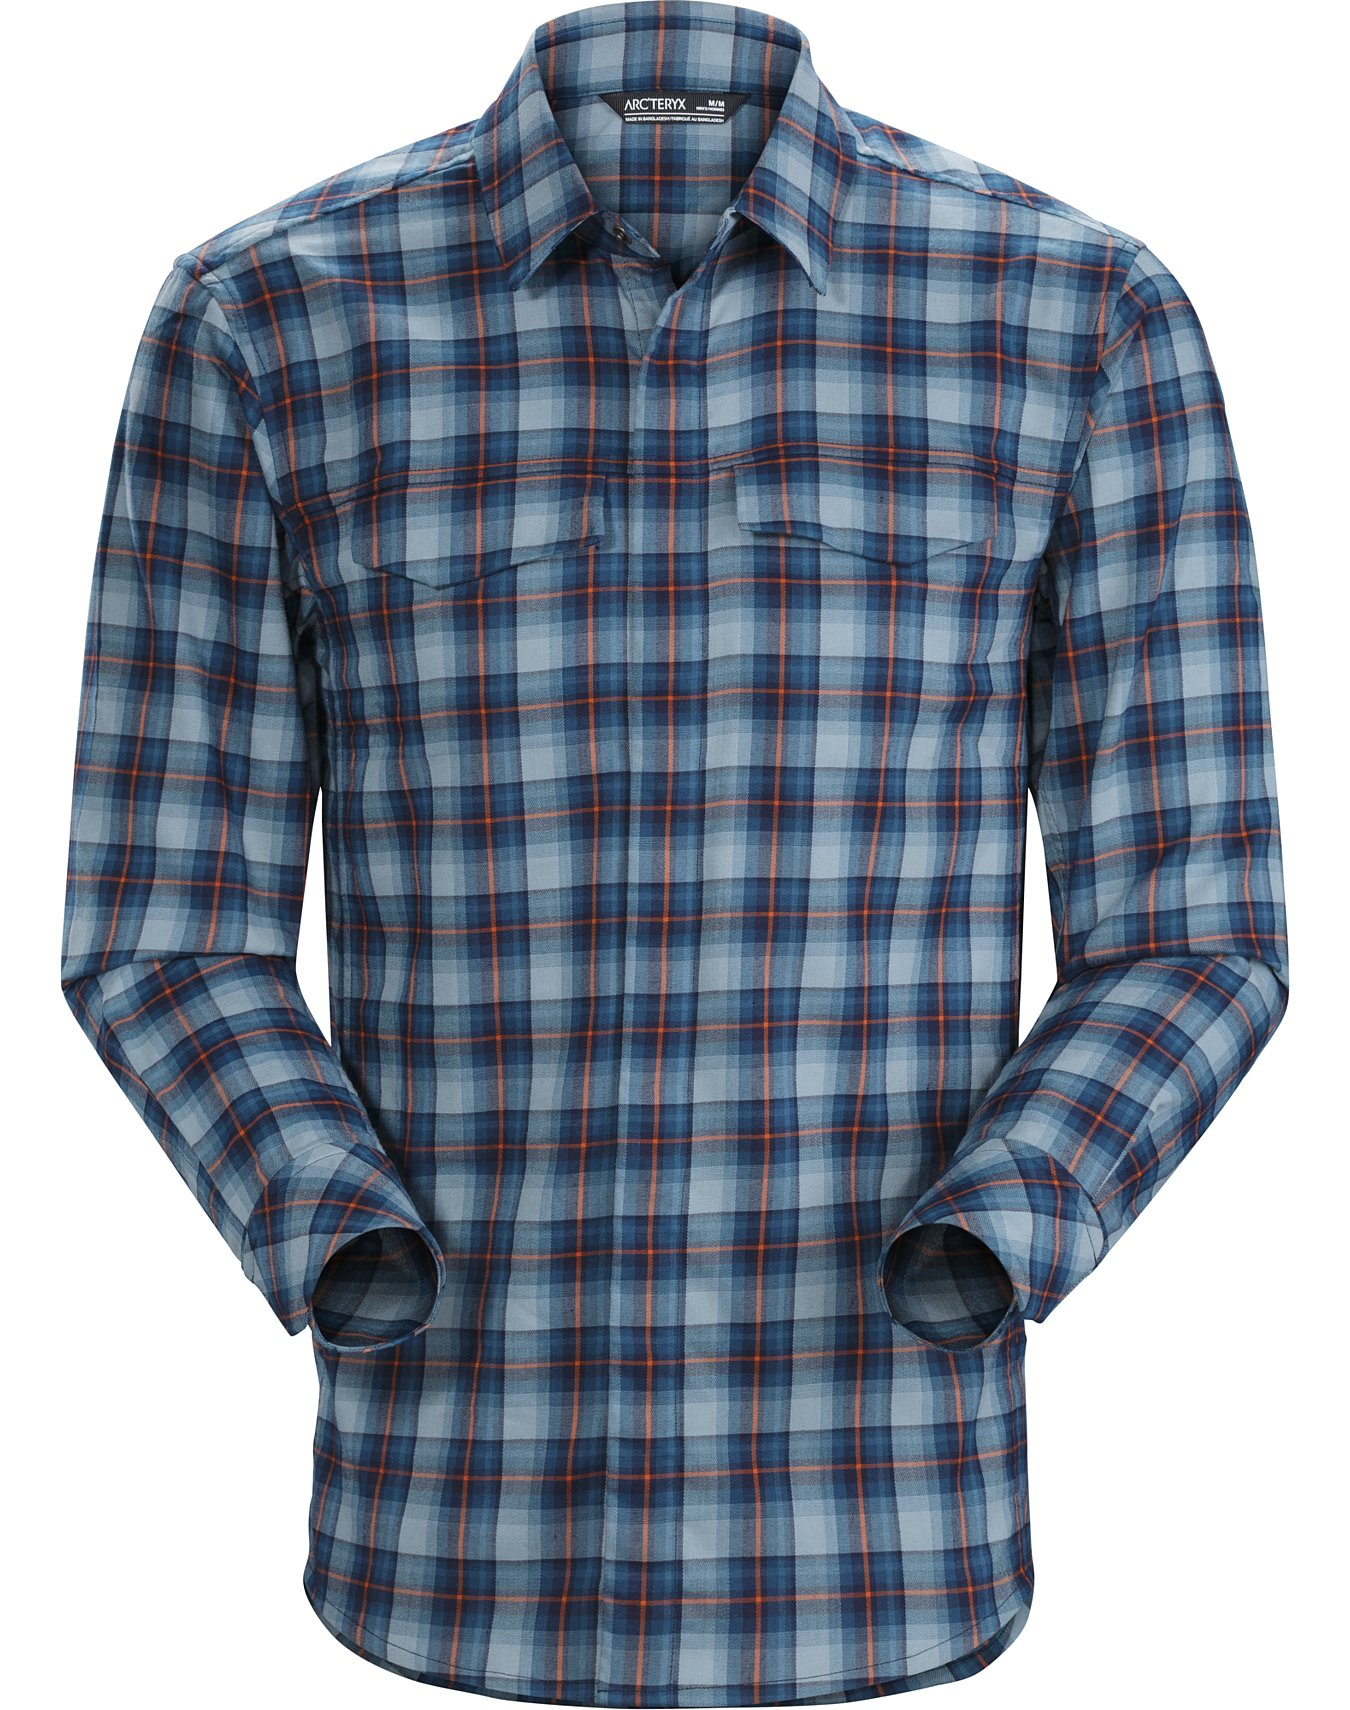 Beloved Mens Button Down Regular Fit Long Sleeve Plaid Casual Tops Shirts